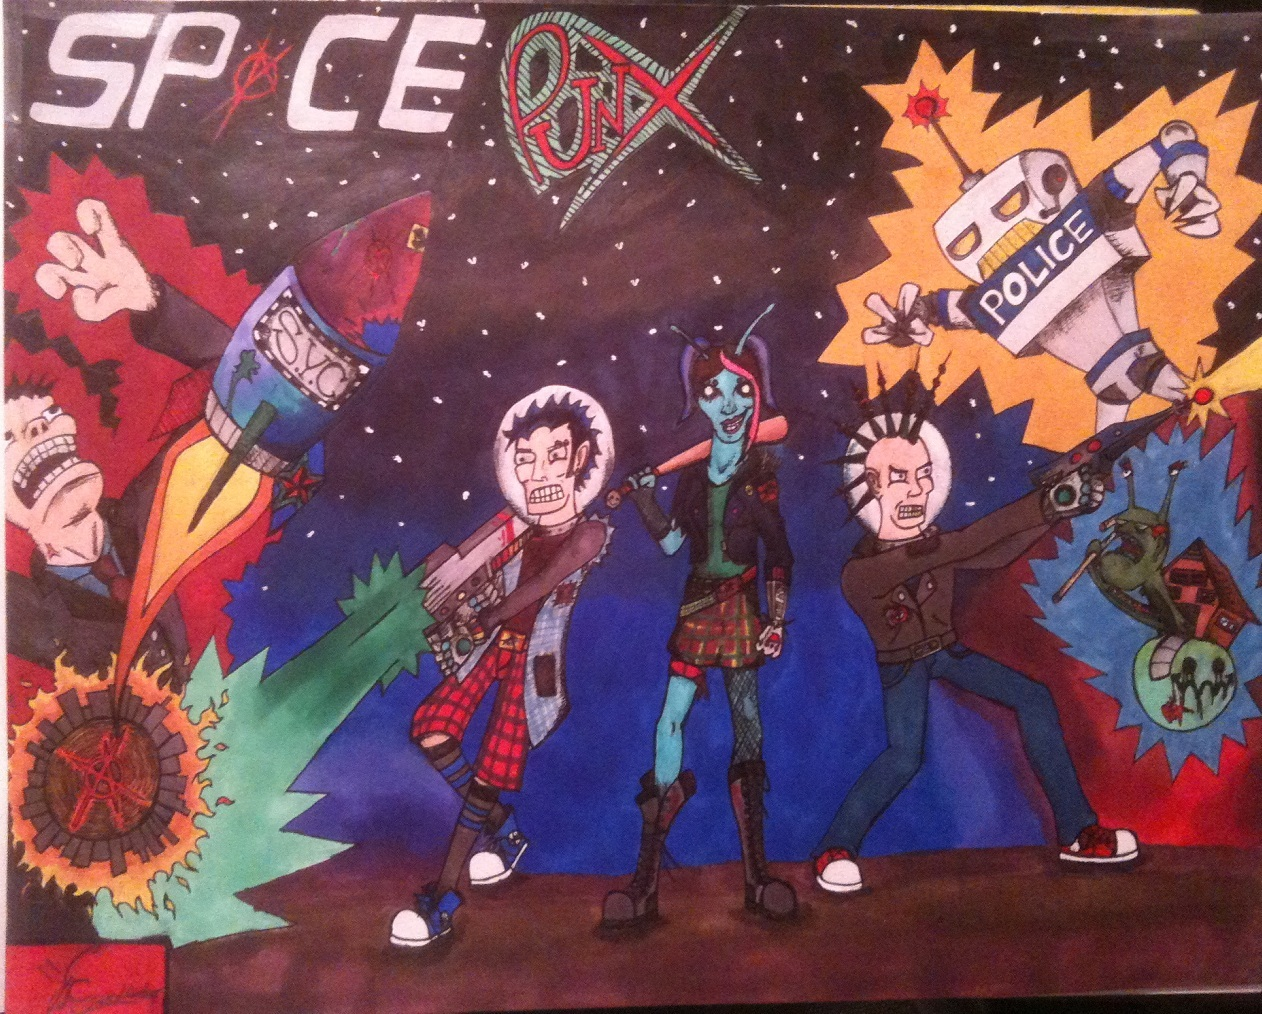 SPACE PUNX